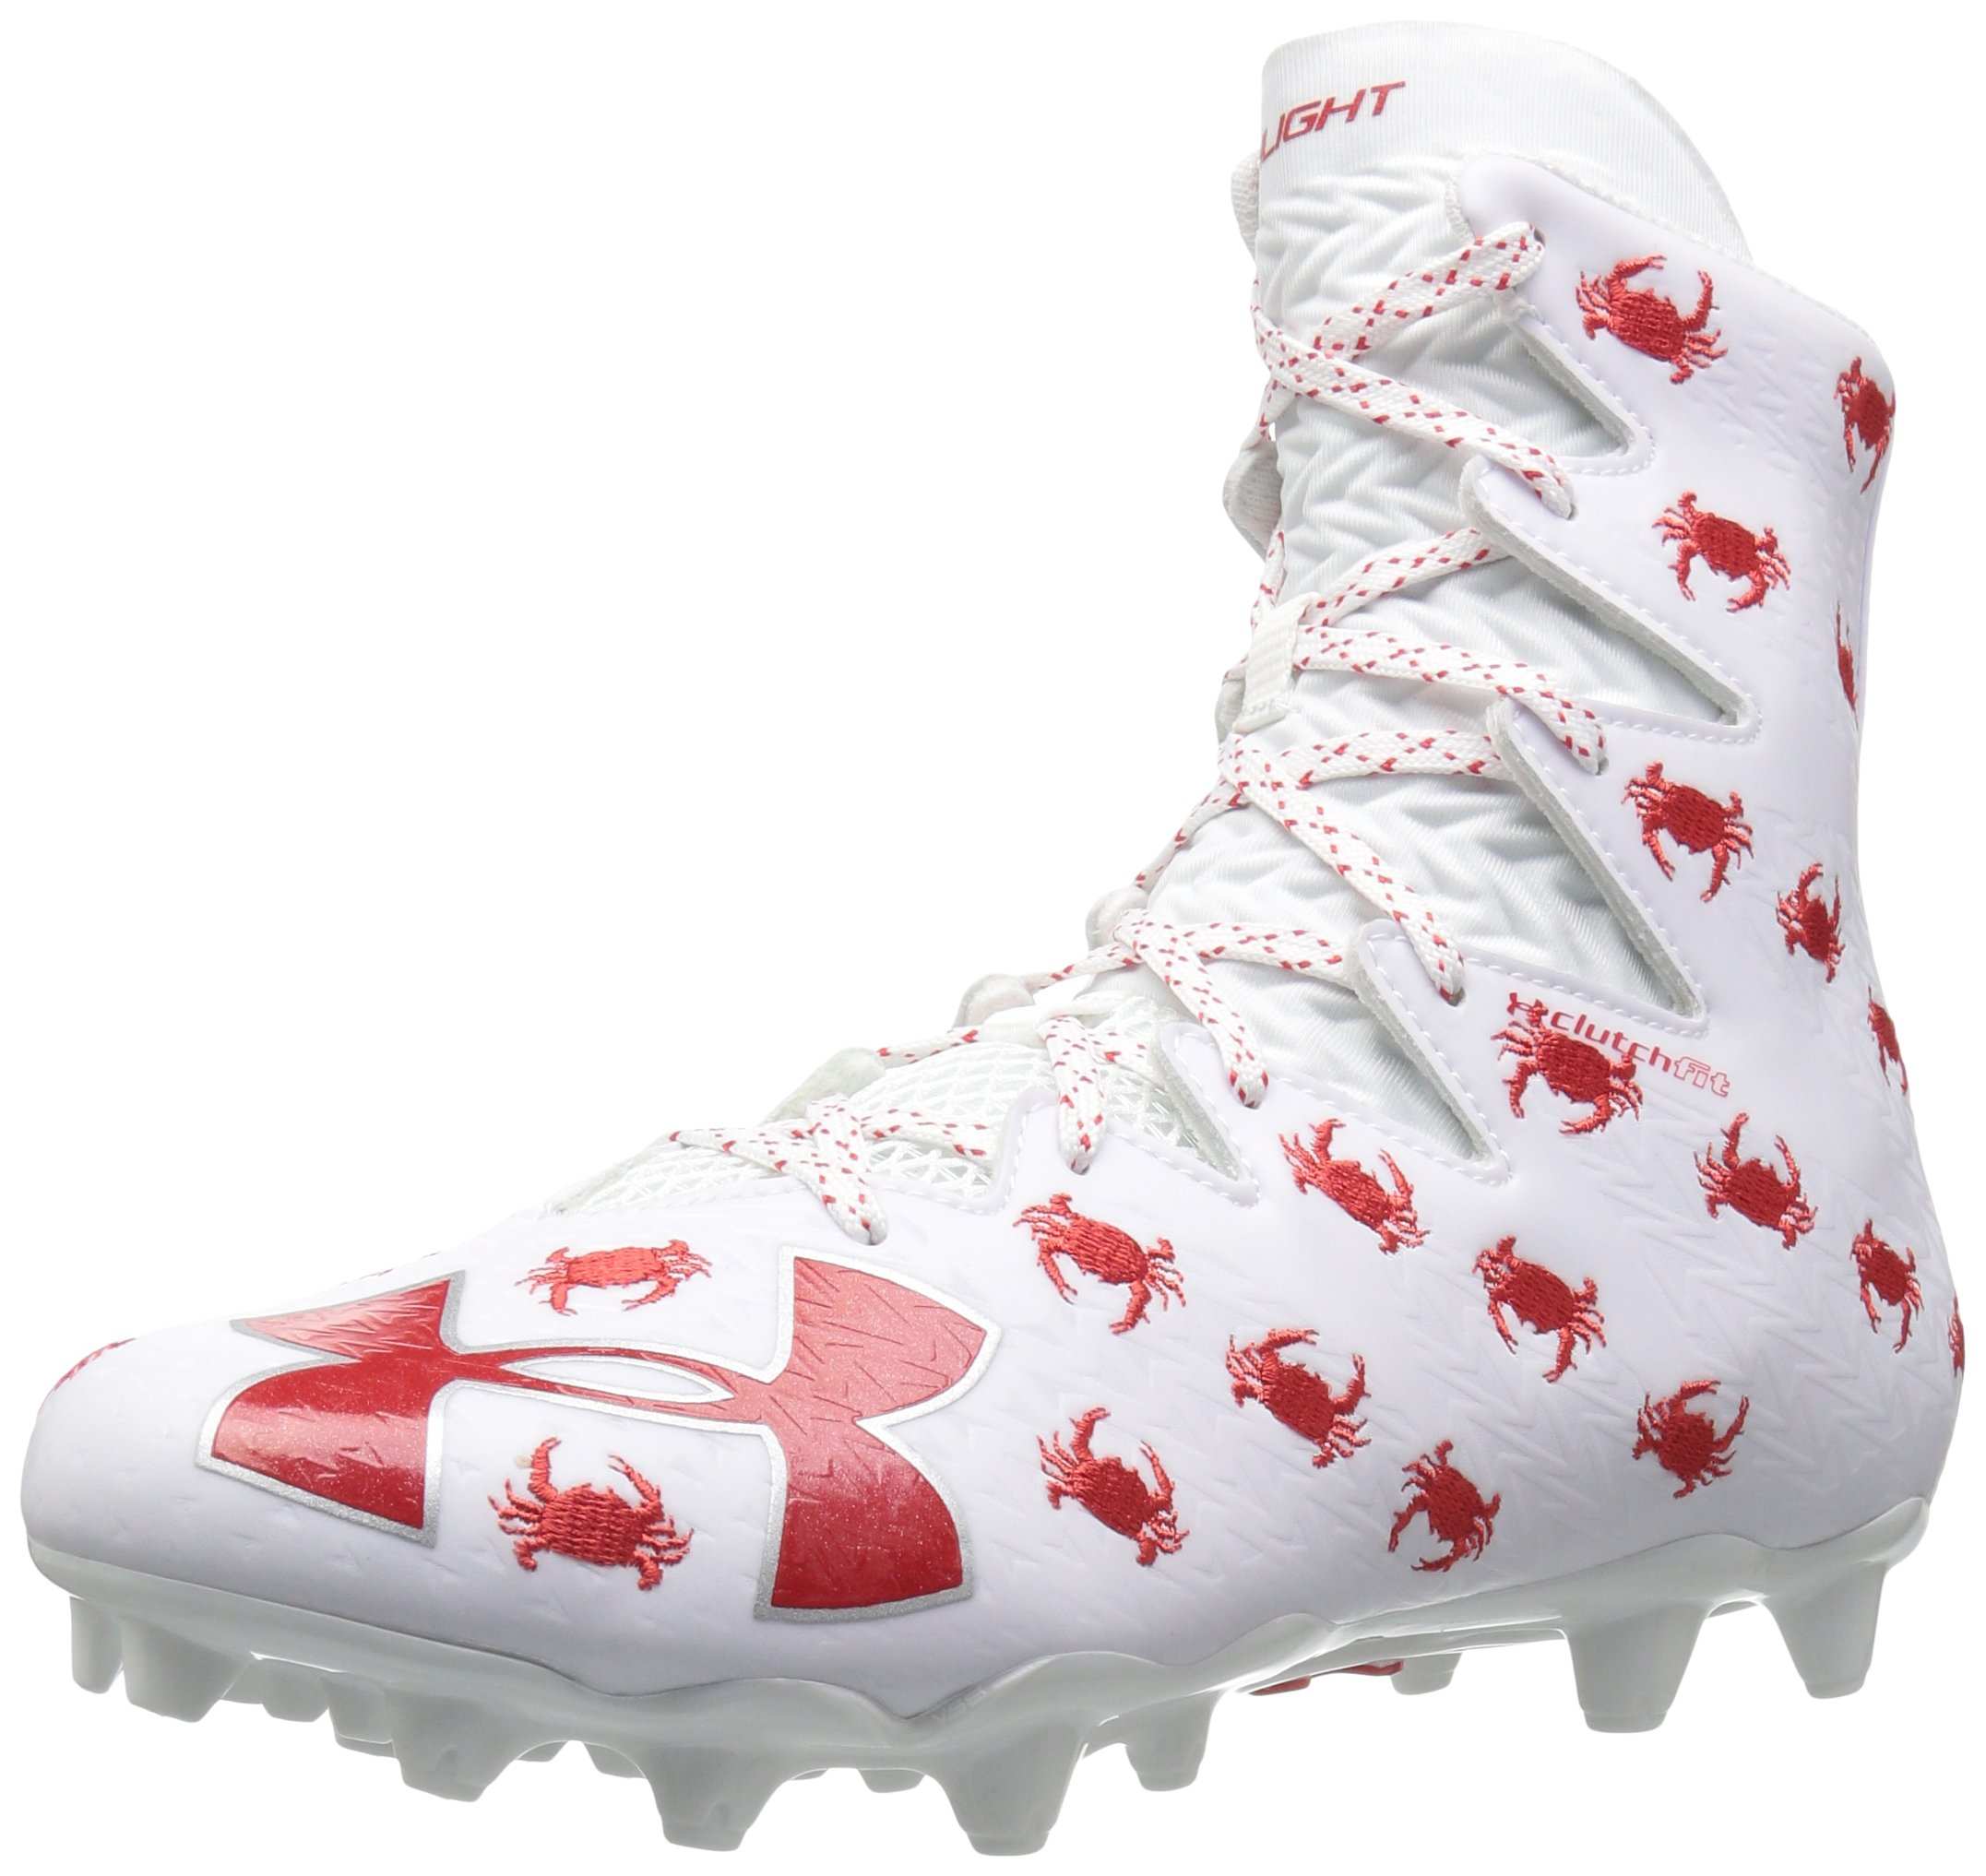 Under Armour Men's Highlight M.C. -Limited Edition Lacrosse Shoe, White (161)/Red, 16 by Under Armour